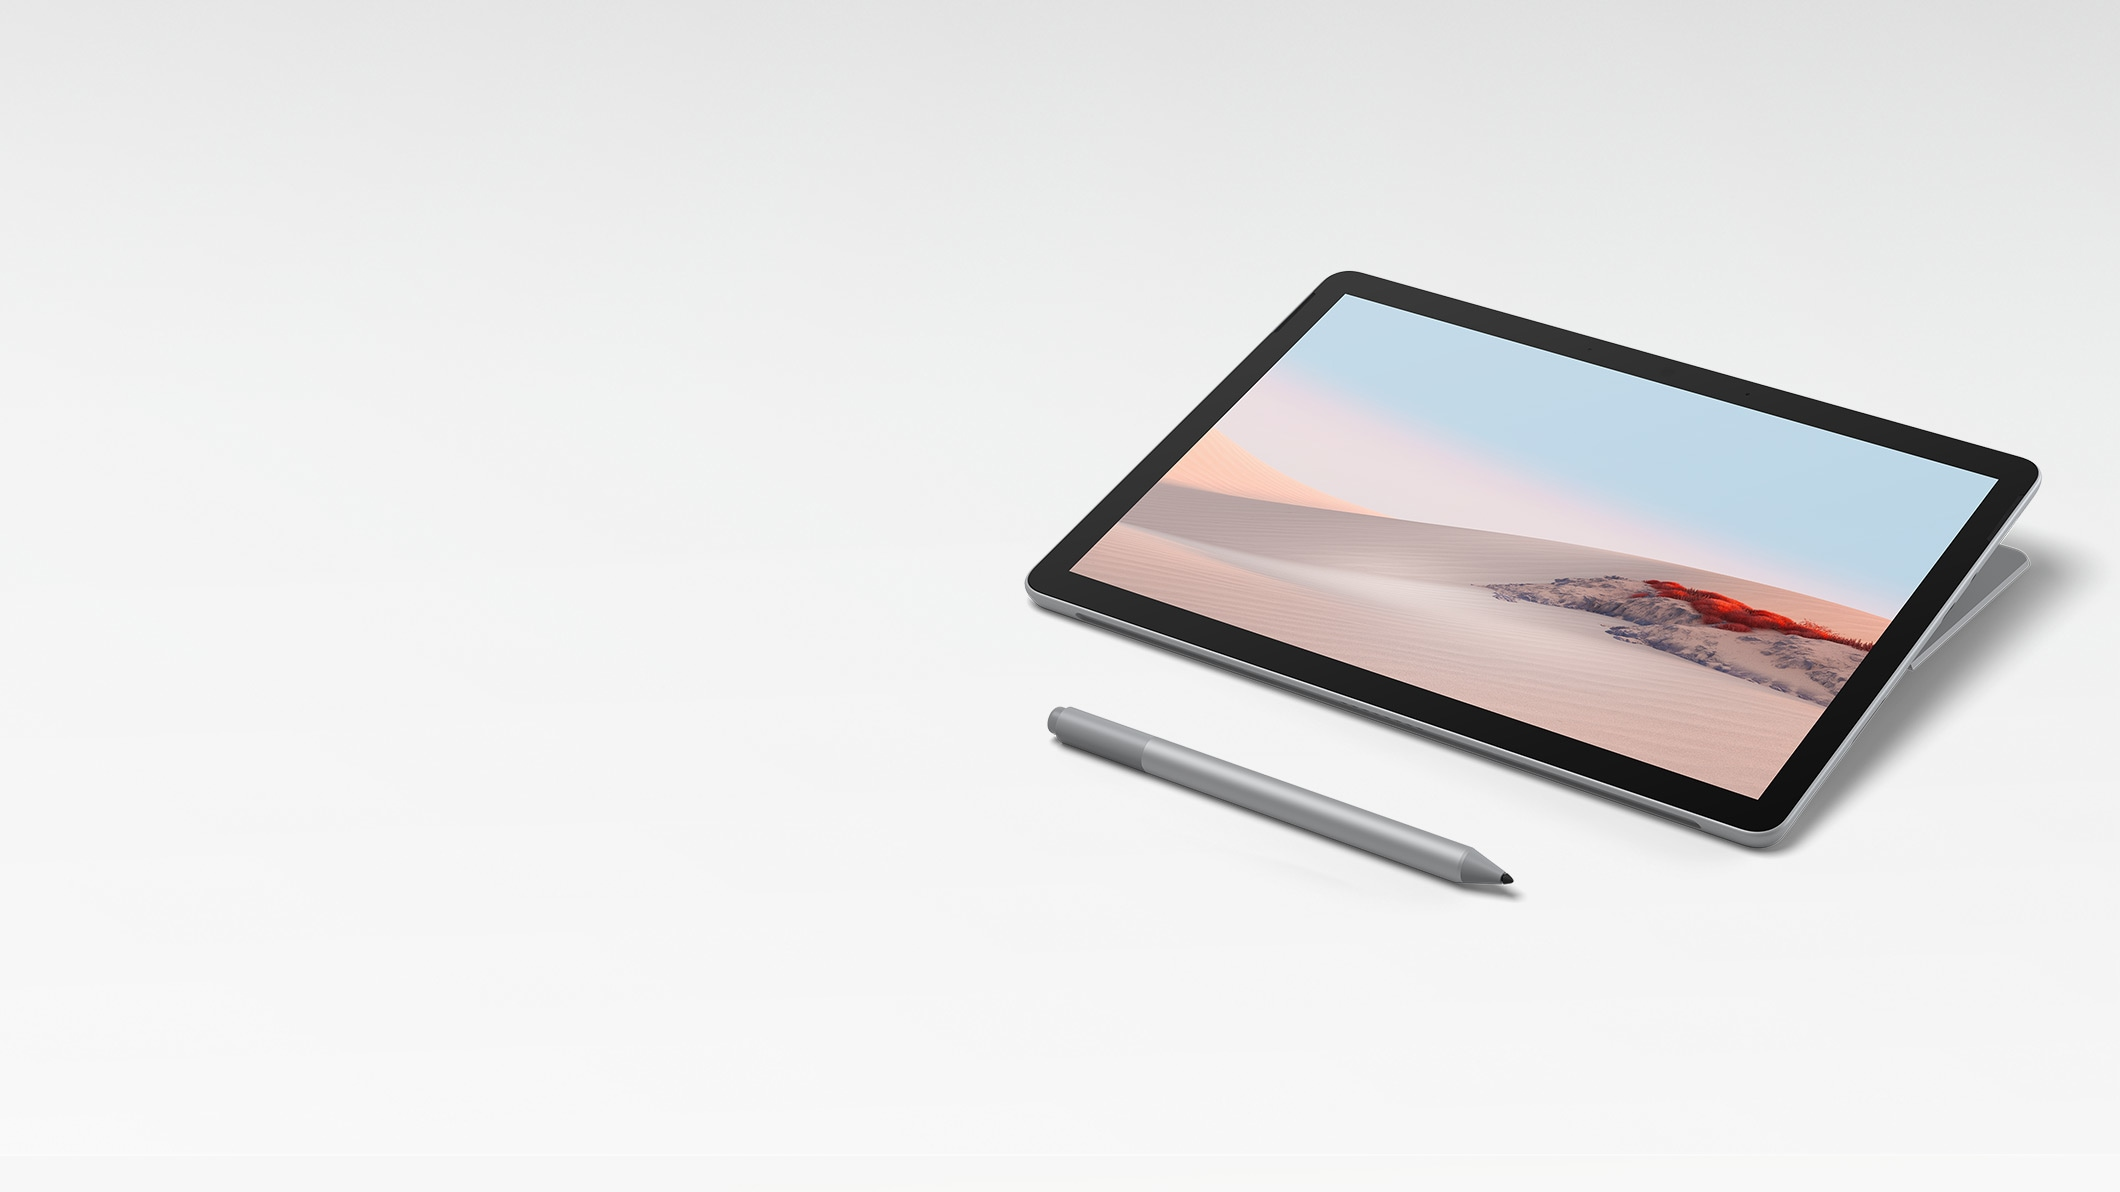 Surface Go 2 in Studio Mode with Surface Pen